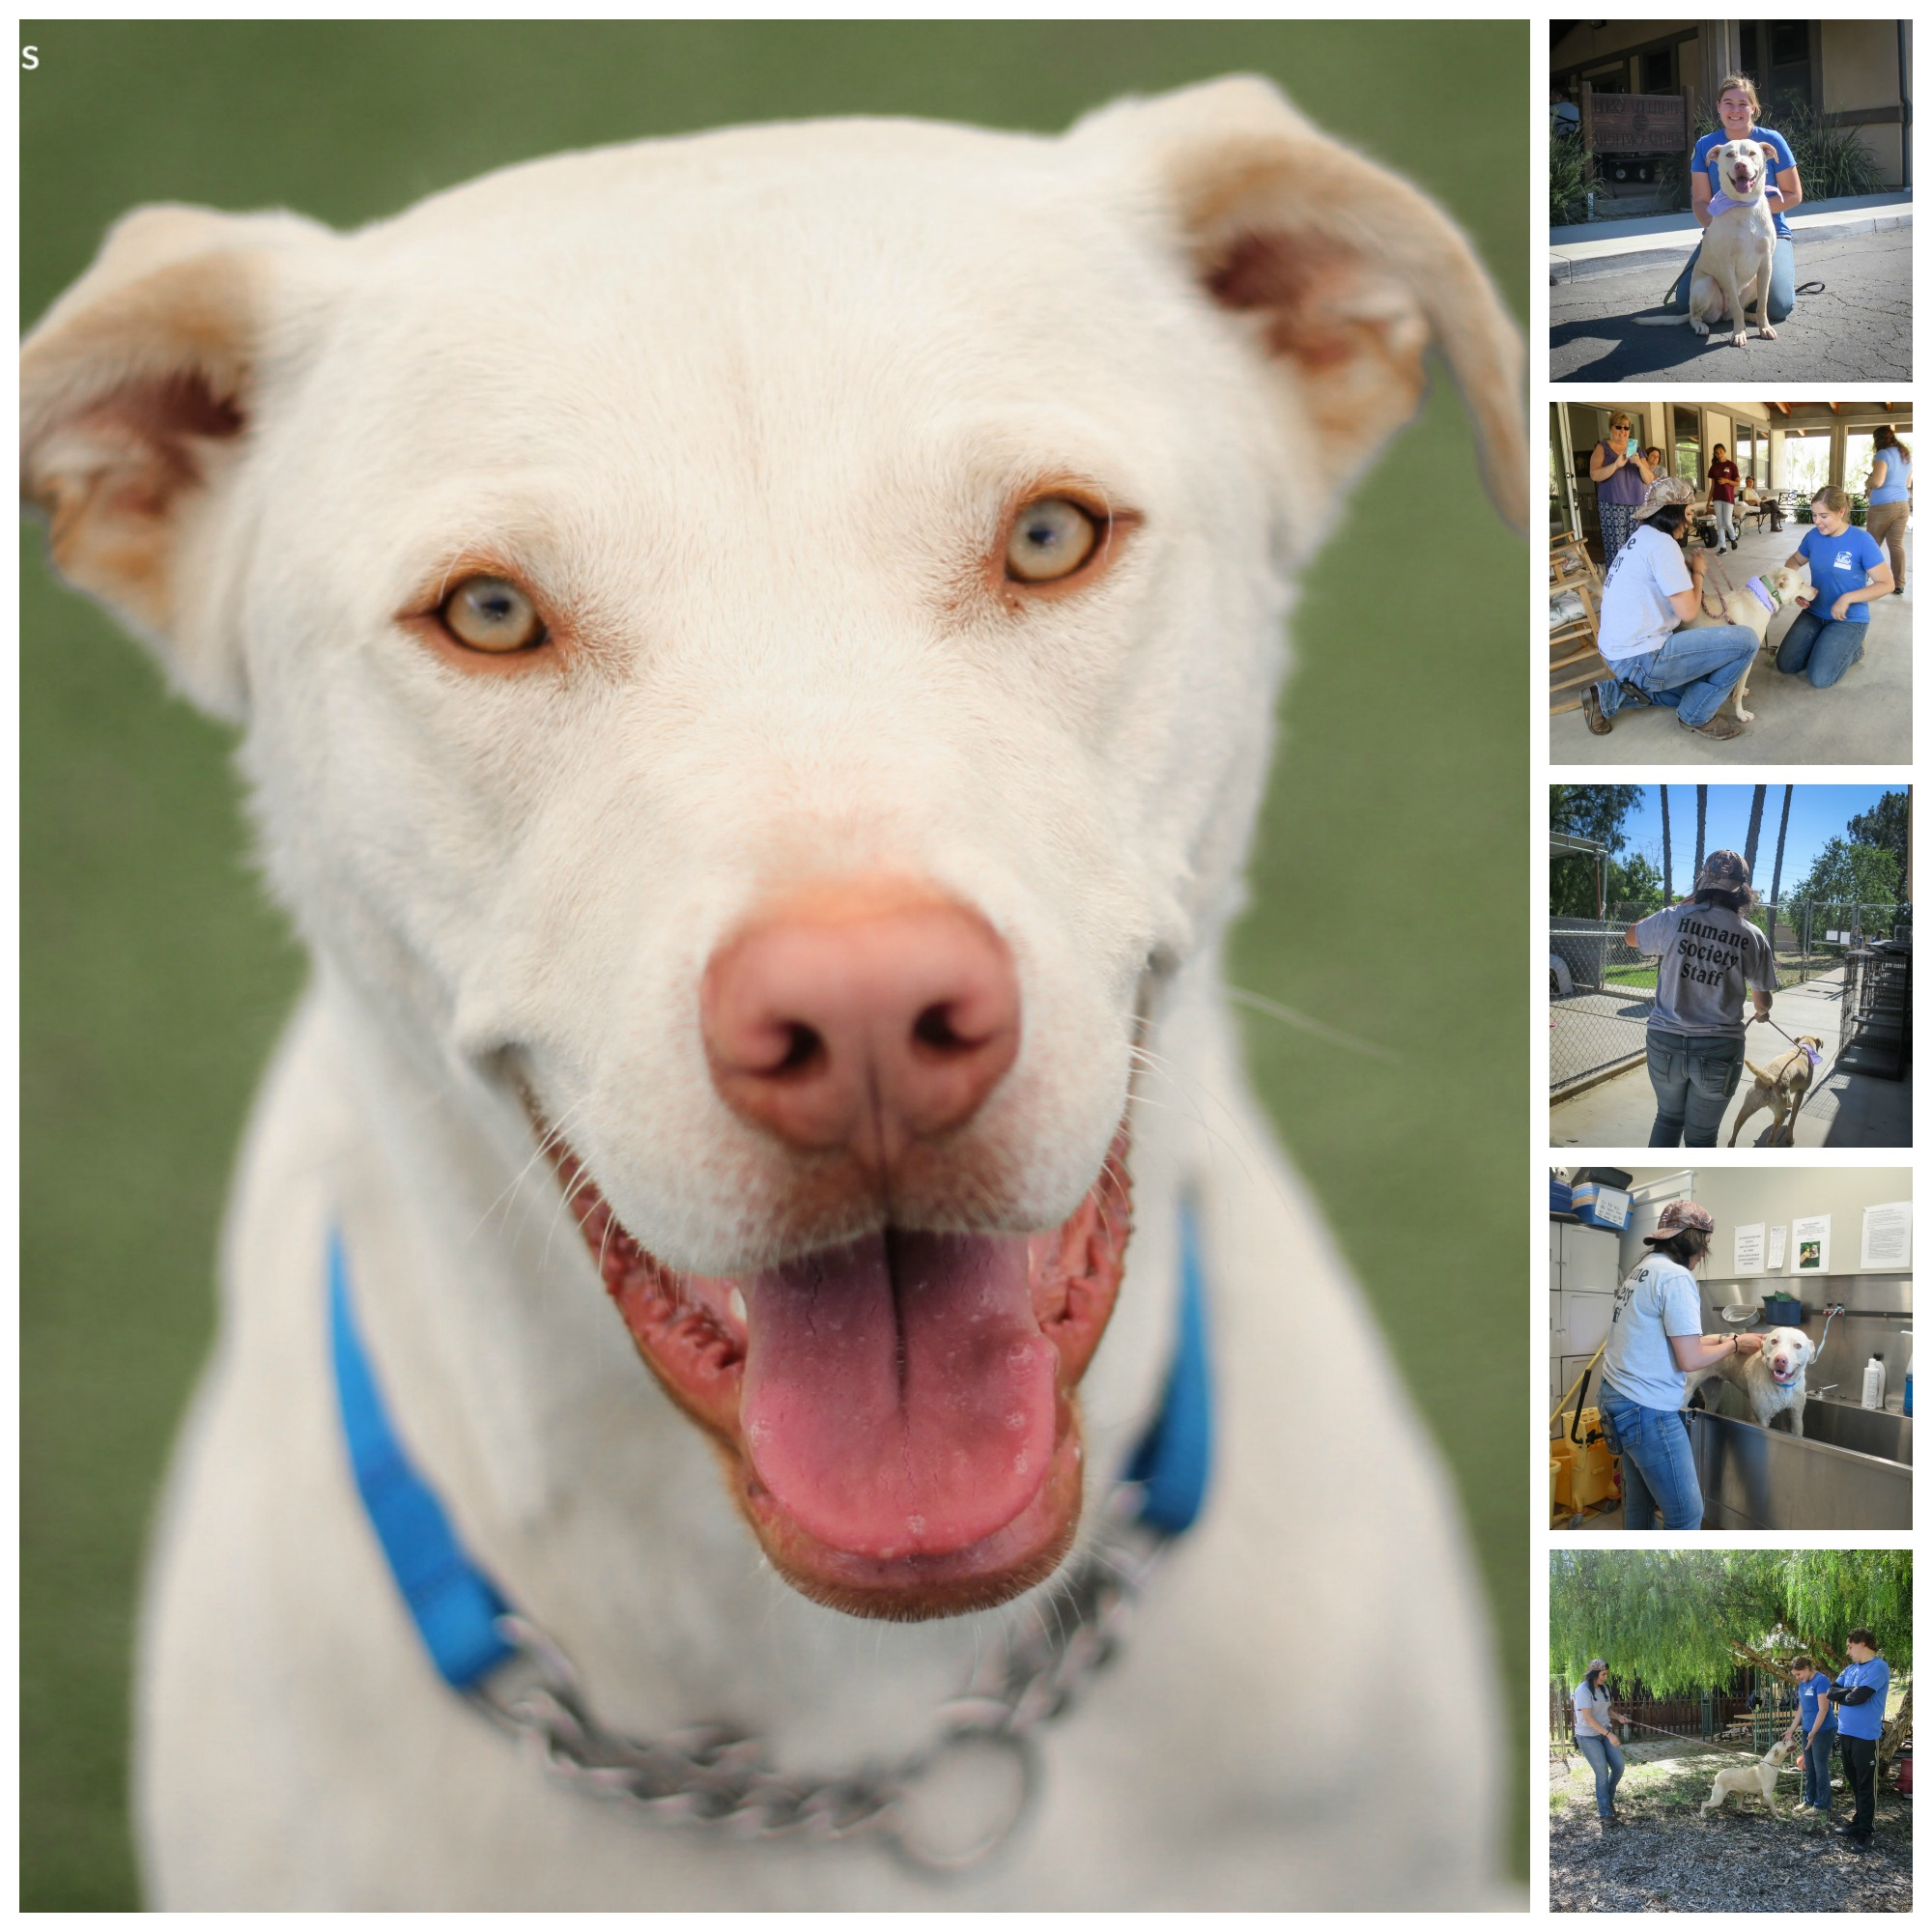 dallas.adopt.collage.jpg